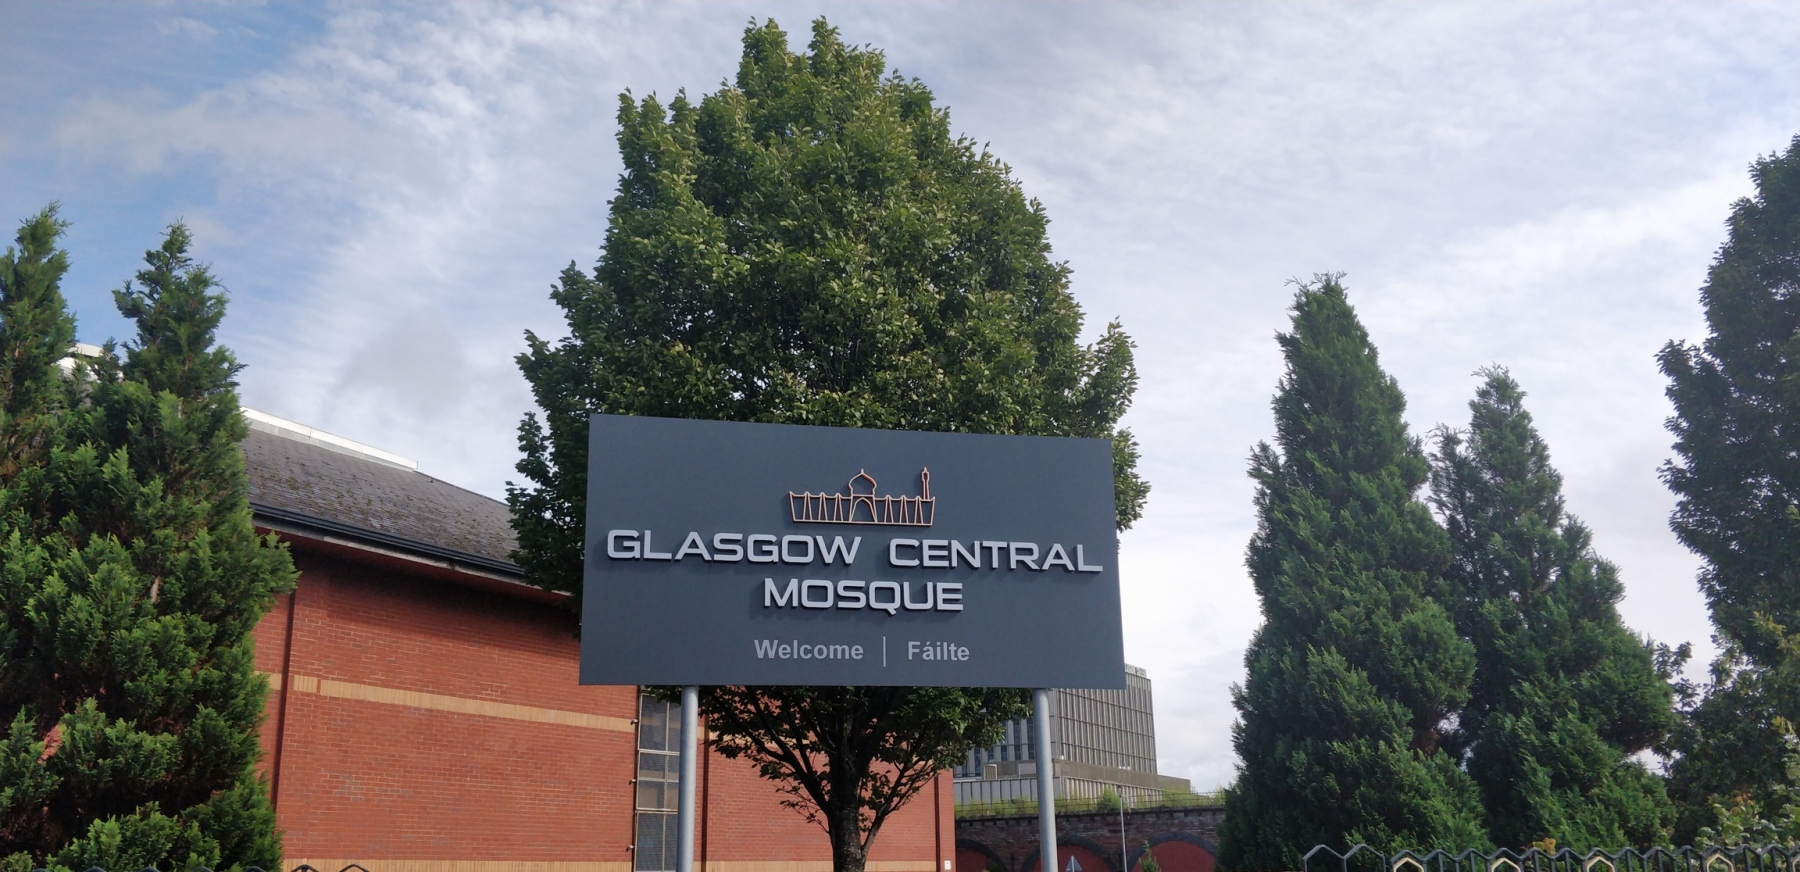 Welcome to Glasgow Central Mosque